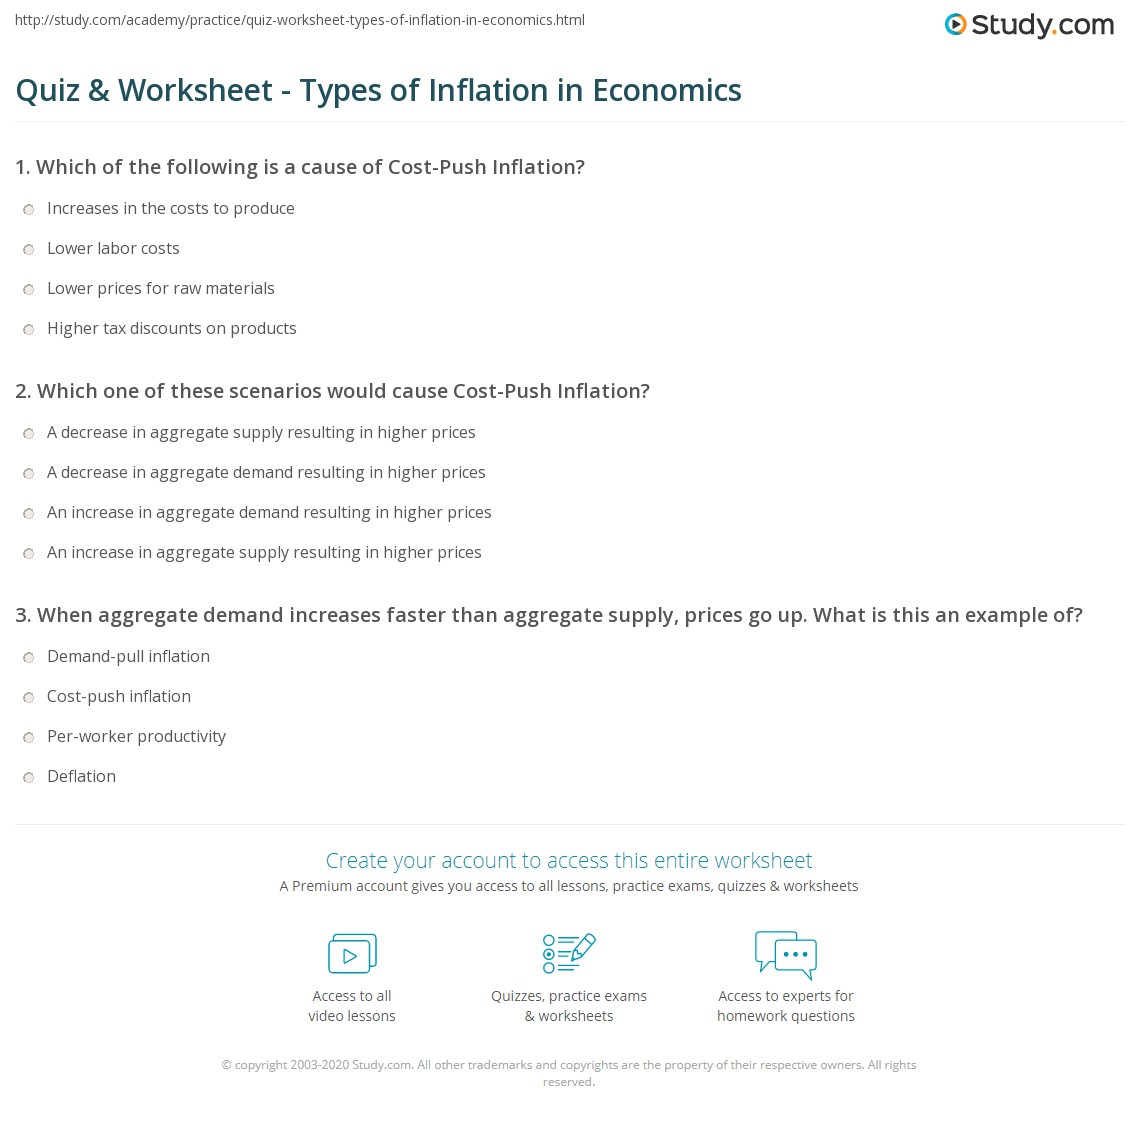 quiz worksheet types of inflation in economics com print demand pull inflation vs cost push inflation worksheet